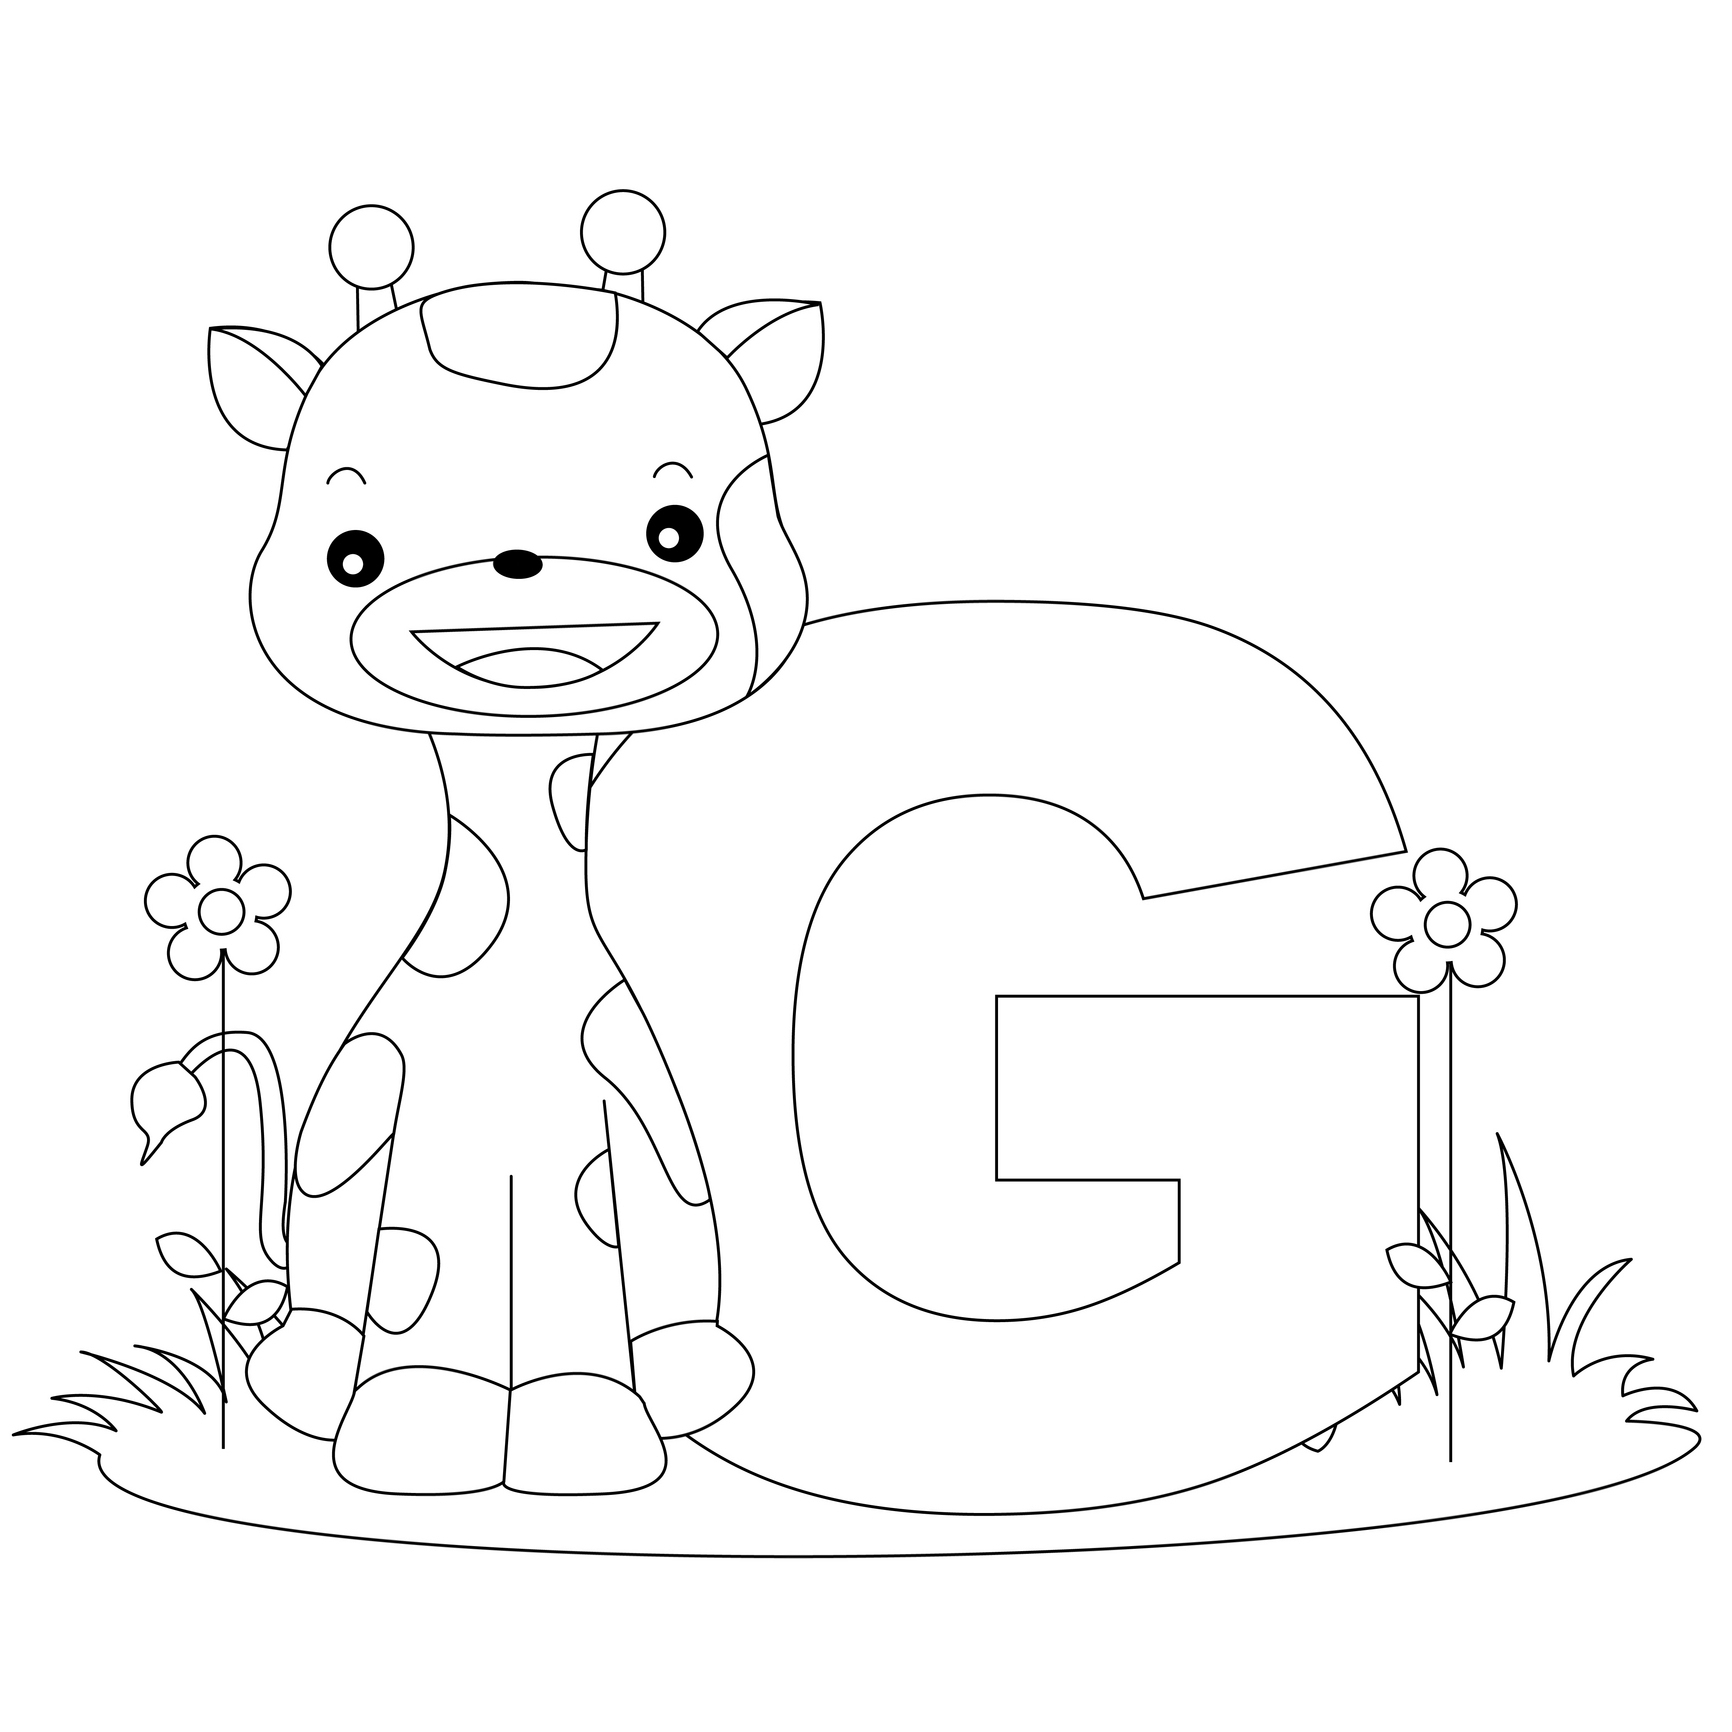 27+ Awesome Image of Letter G Coloring Pages